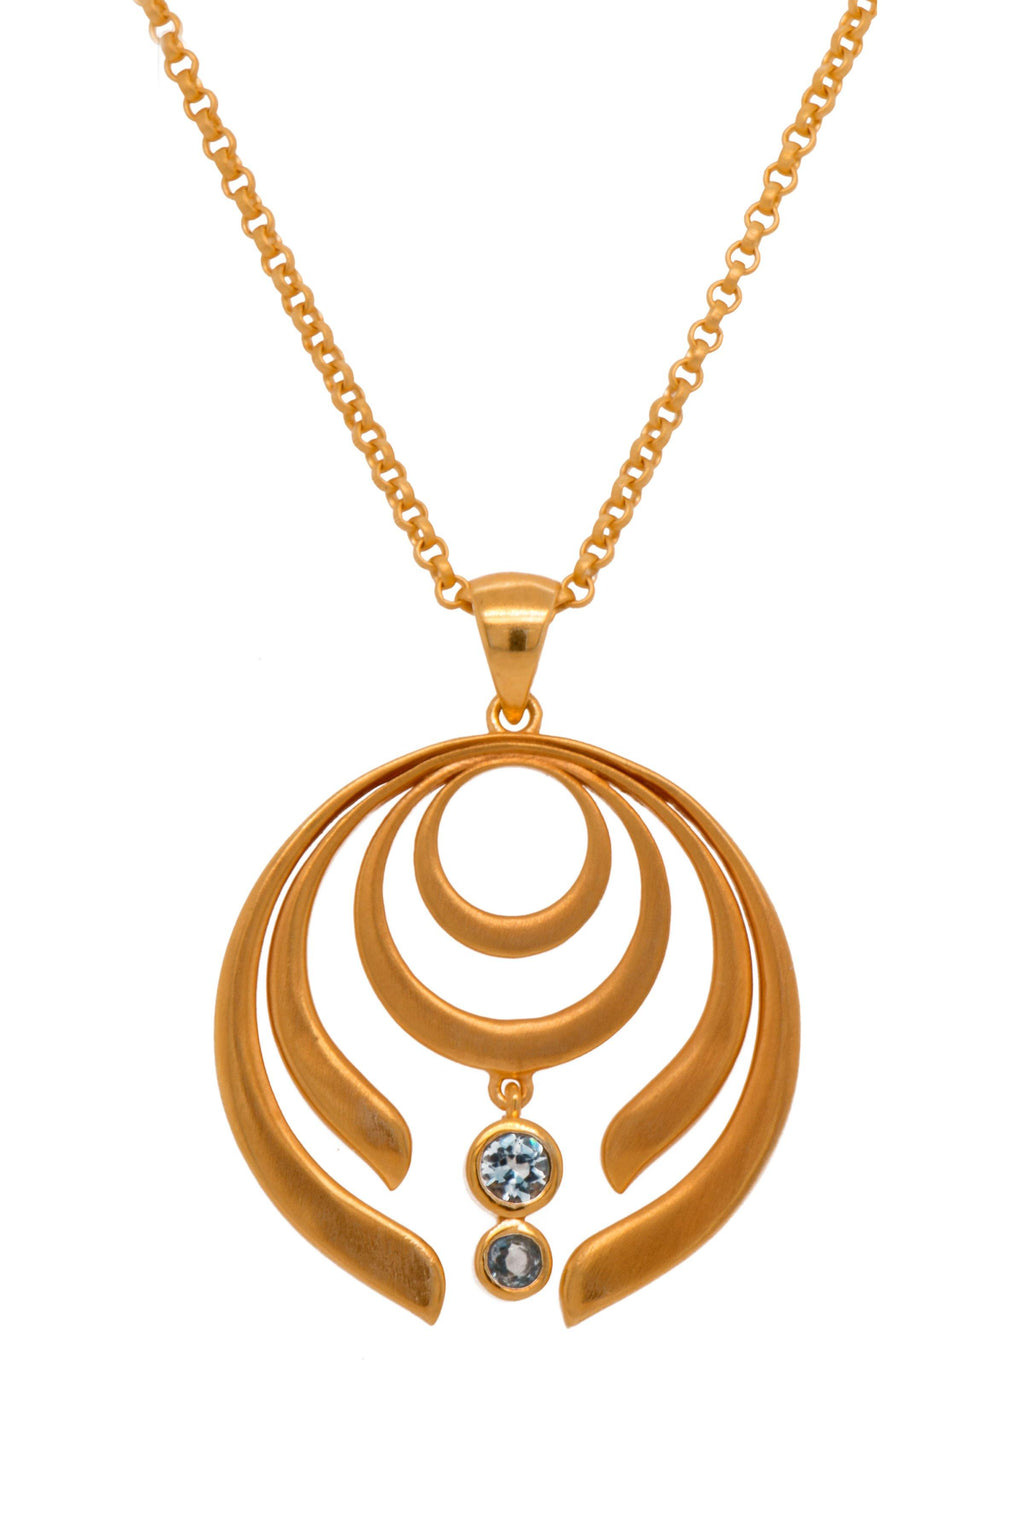 STRENGTH LARGE BLUE TOPAZ PENDANT 24K GOLD VERMEIL - Joyla Jewelry